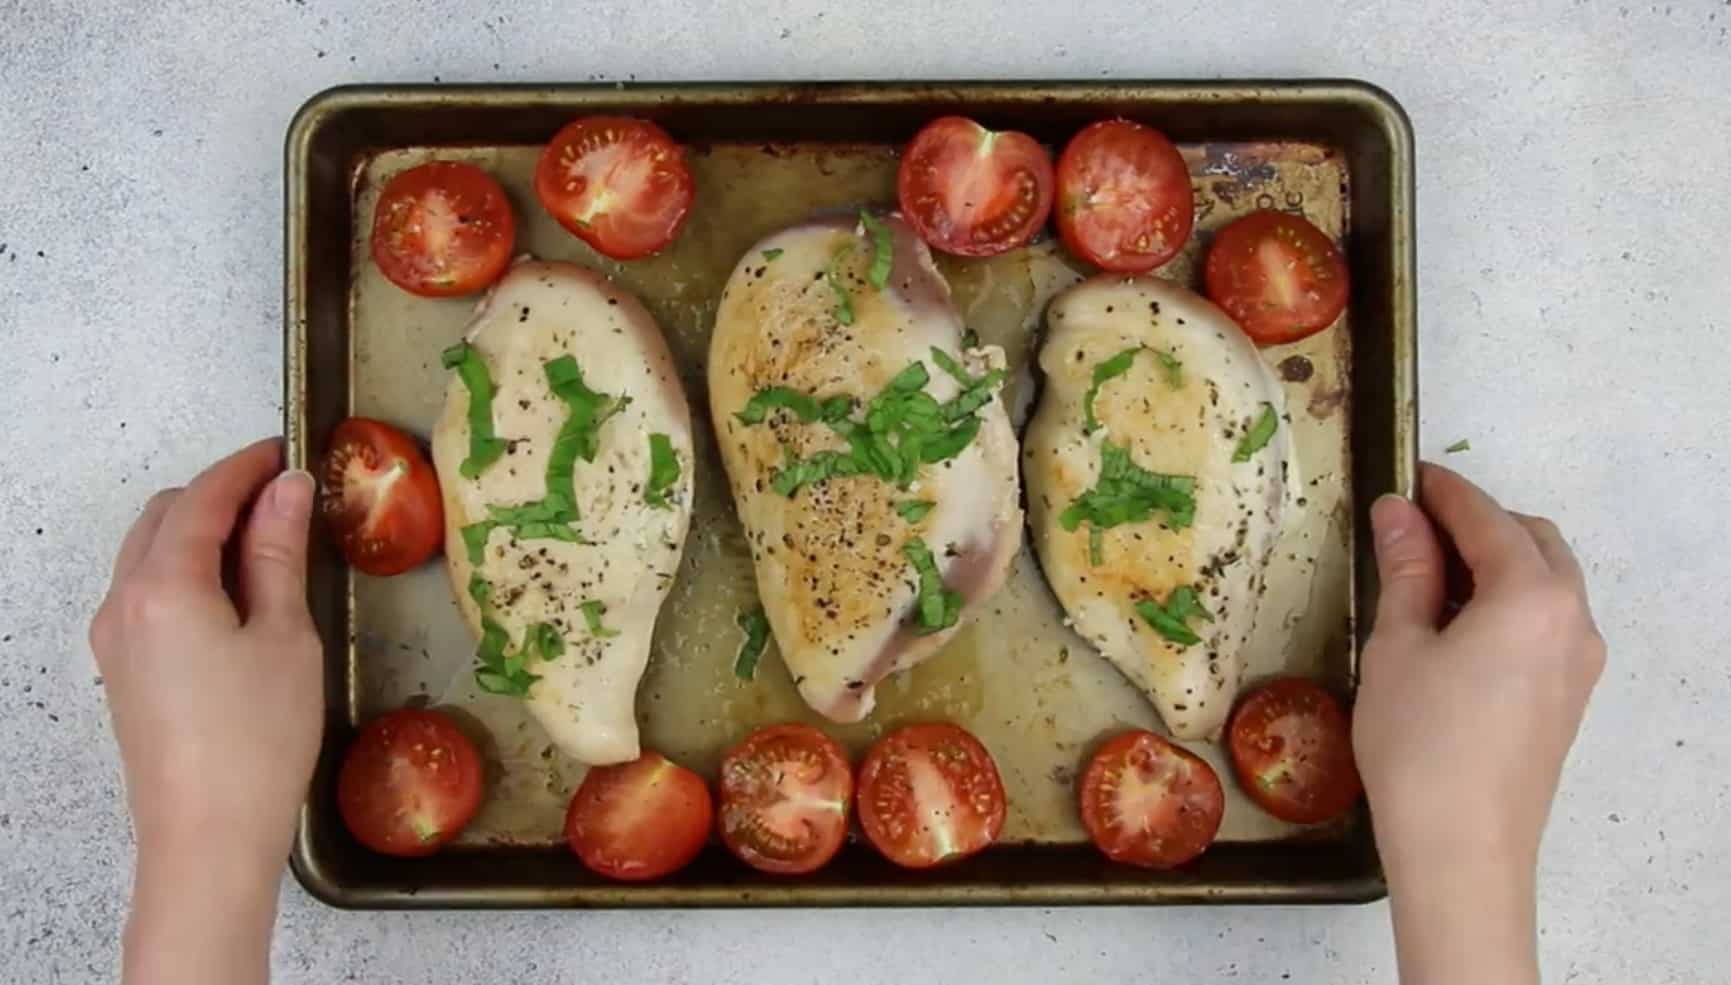 image of stuffed chicken breast and tomatoes on a baking pan